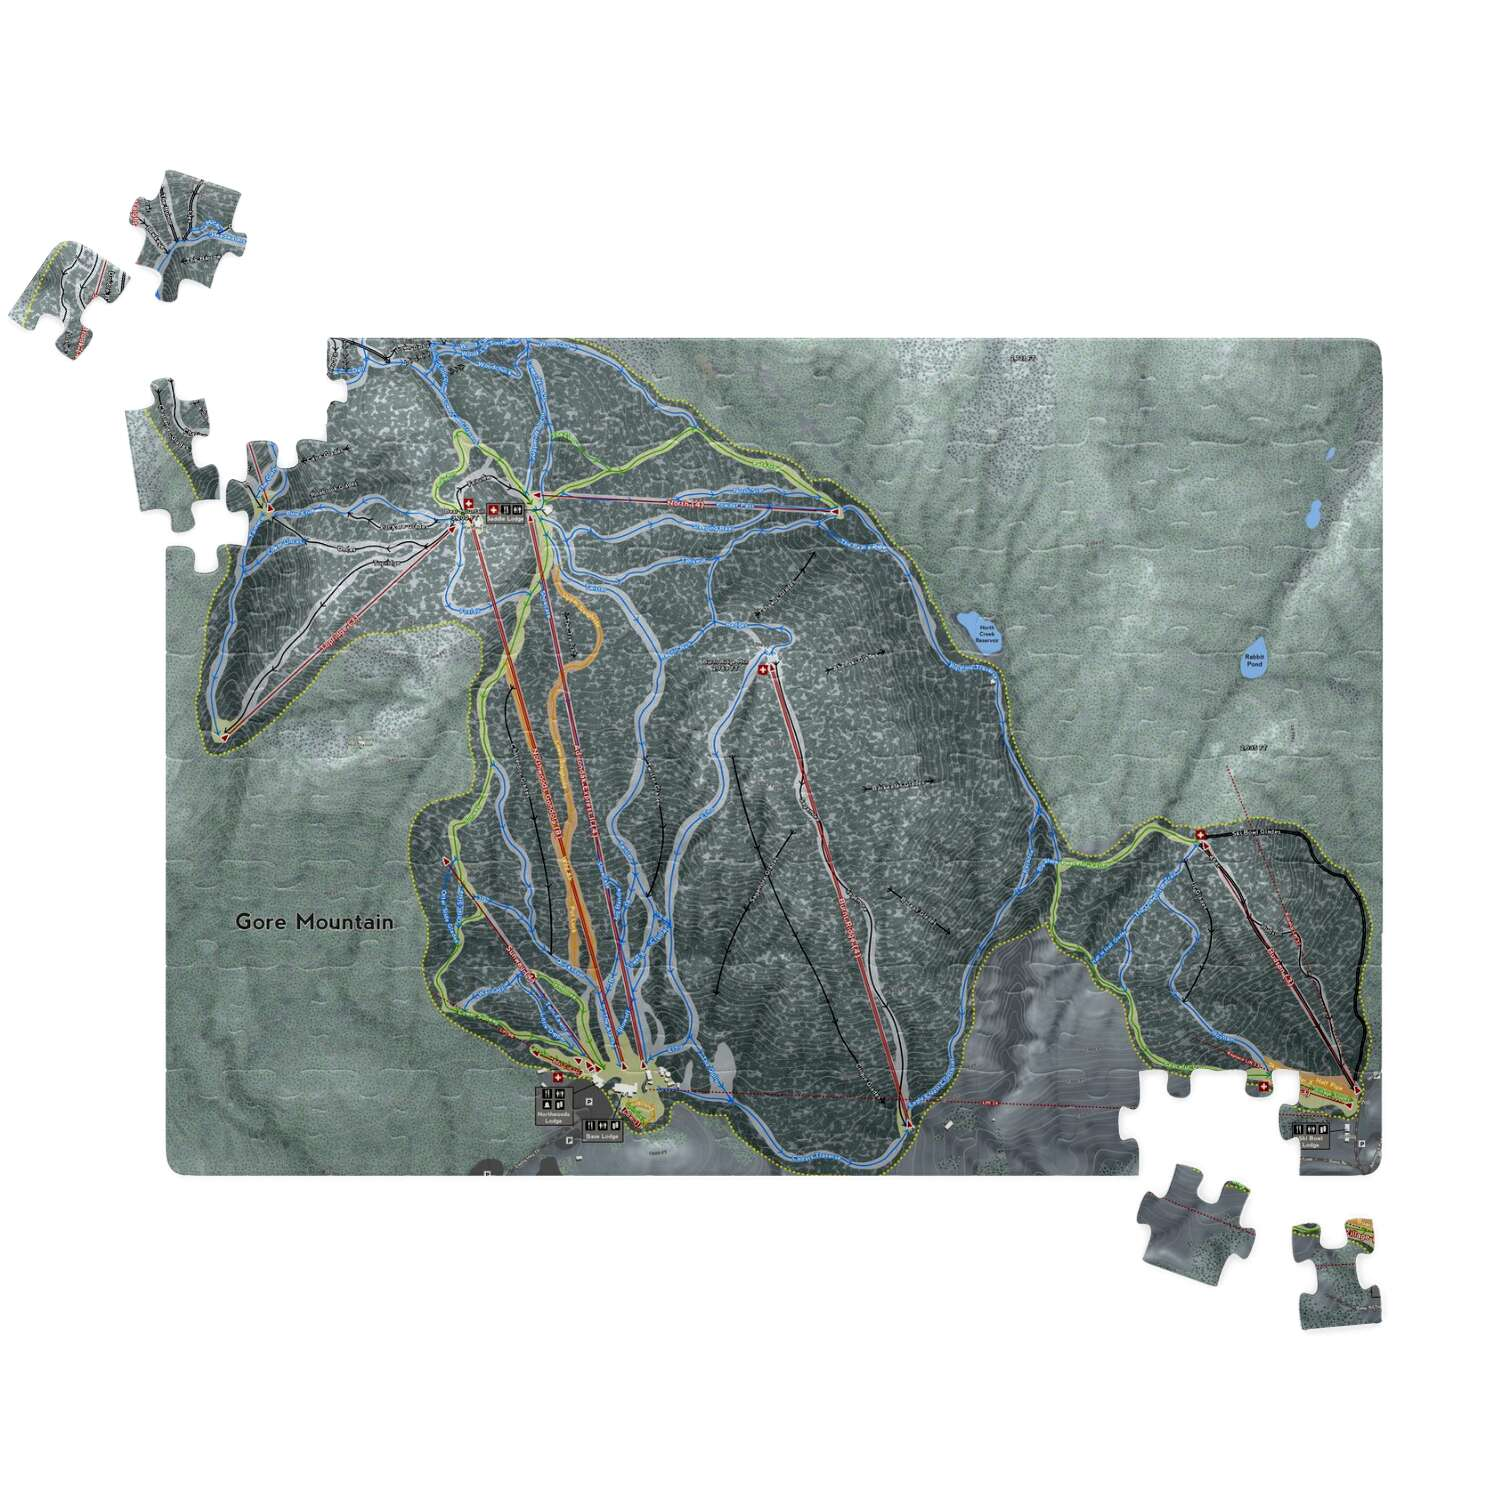 Gore Mountain New York Ski Resort Map Puzzles